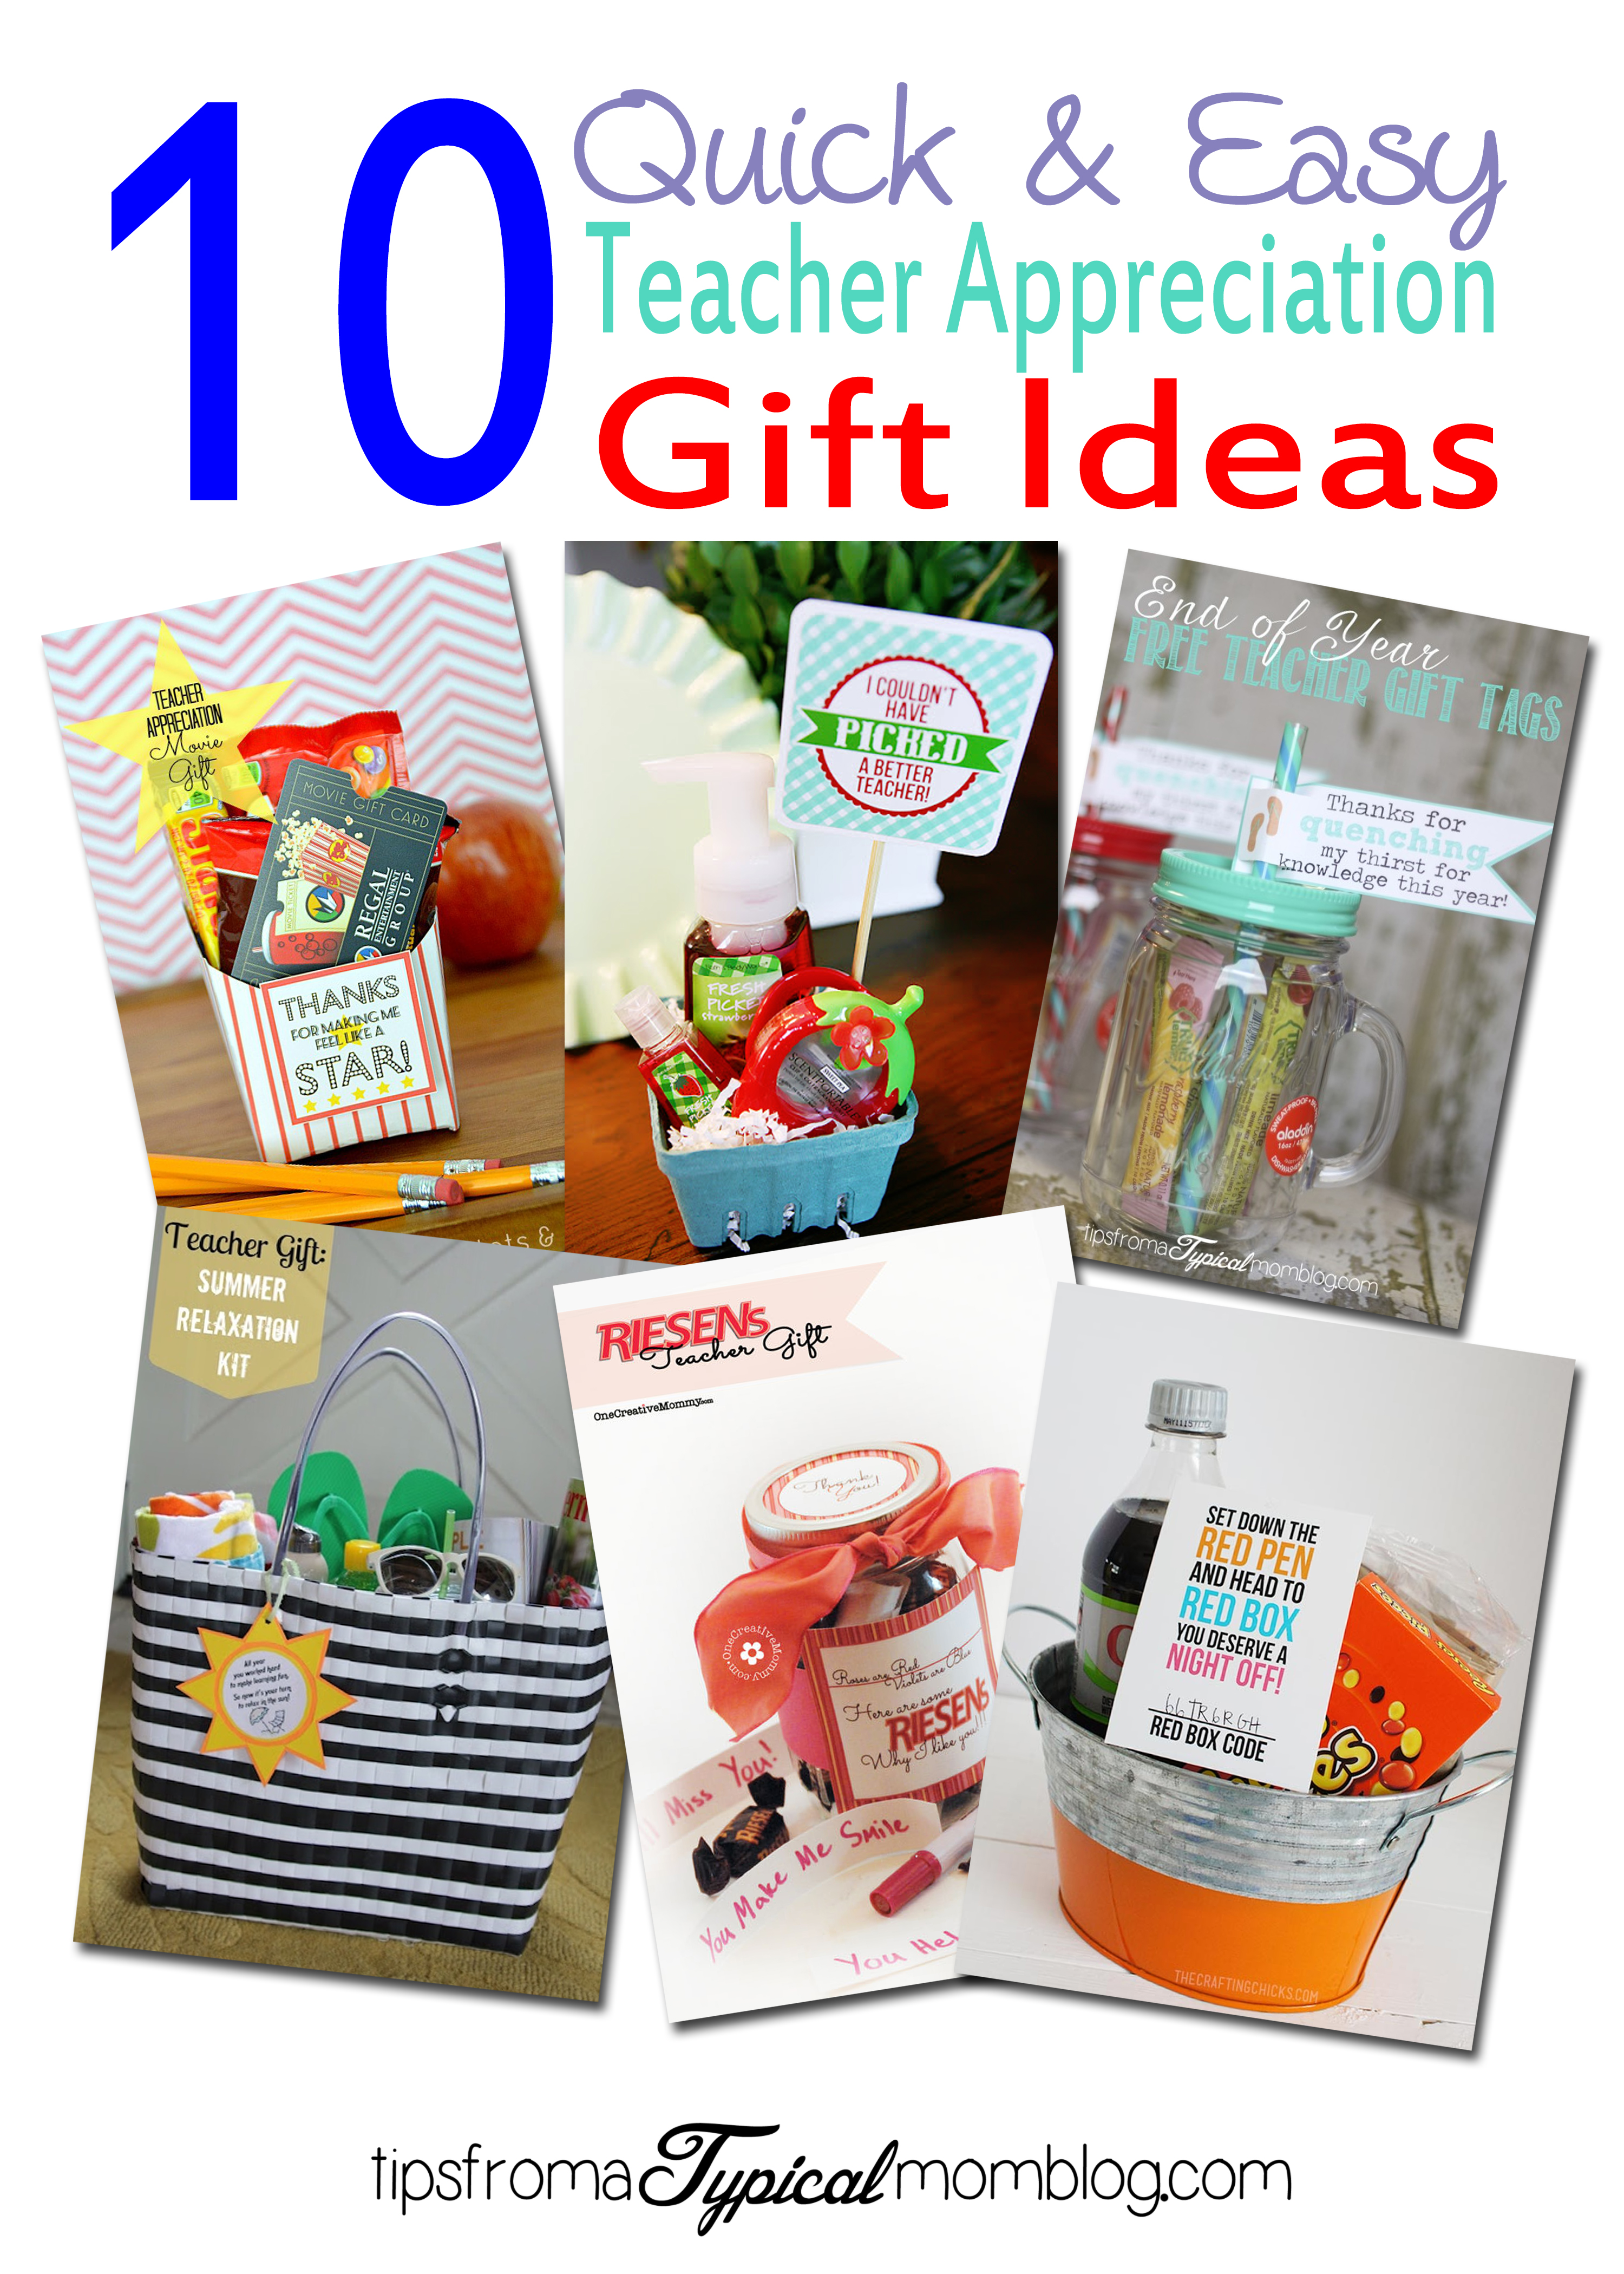 photo about Redbox Teacher Appreciation Printable named 10 Uncomplicated and Uncomplicated Trainer Appreciation Reward Guidelines